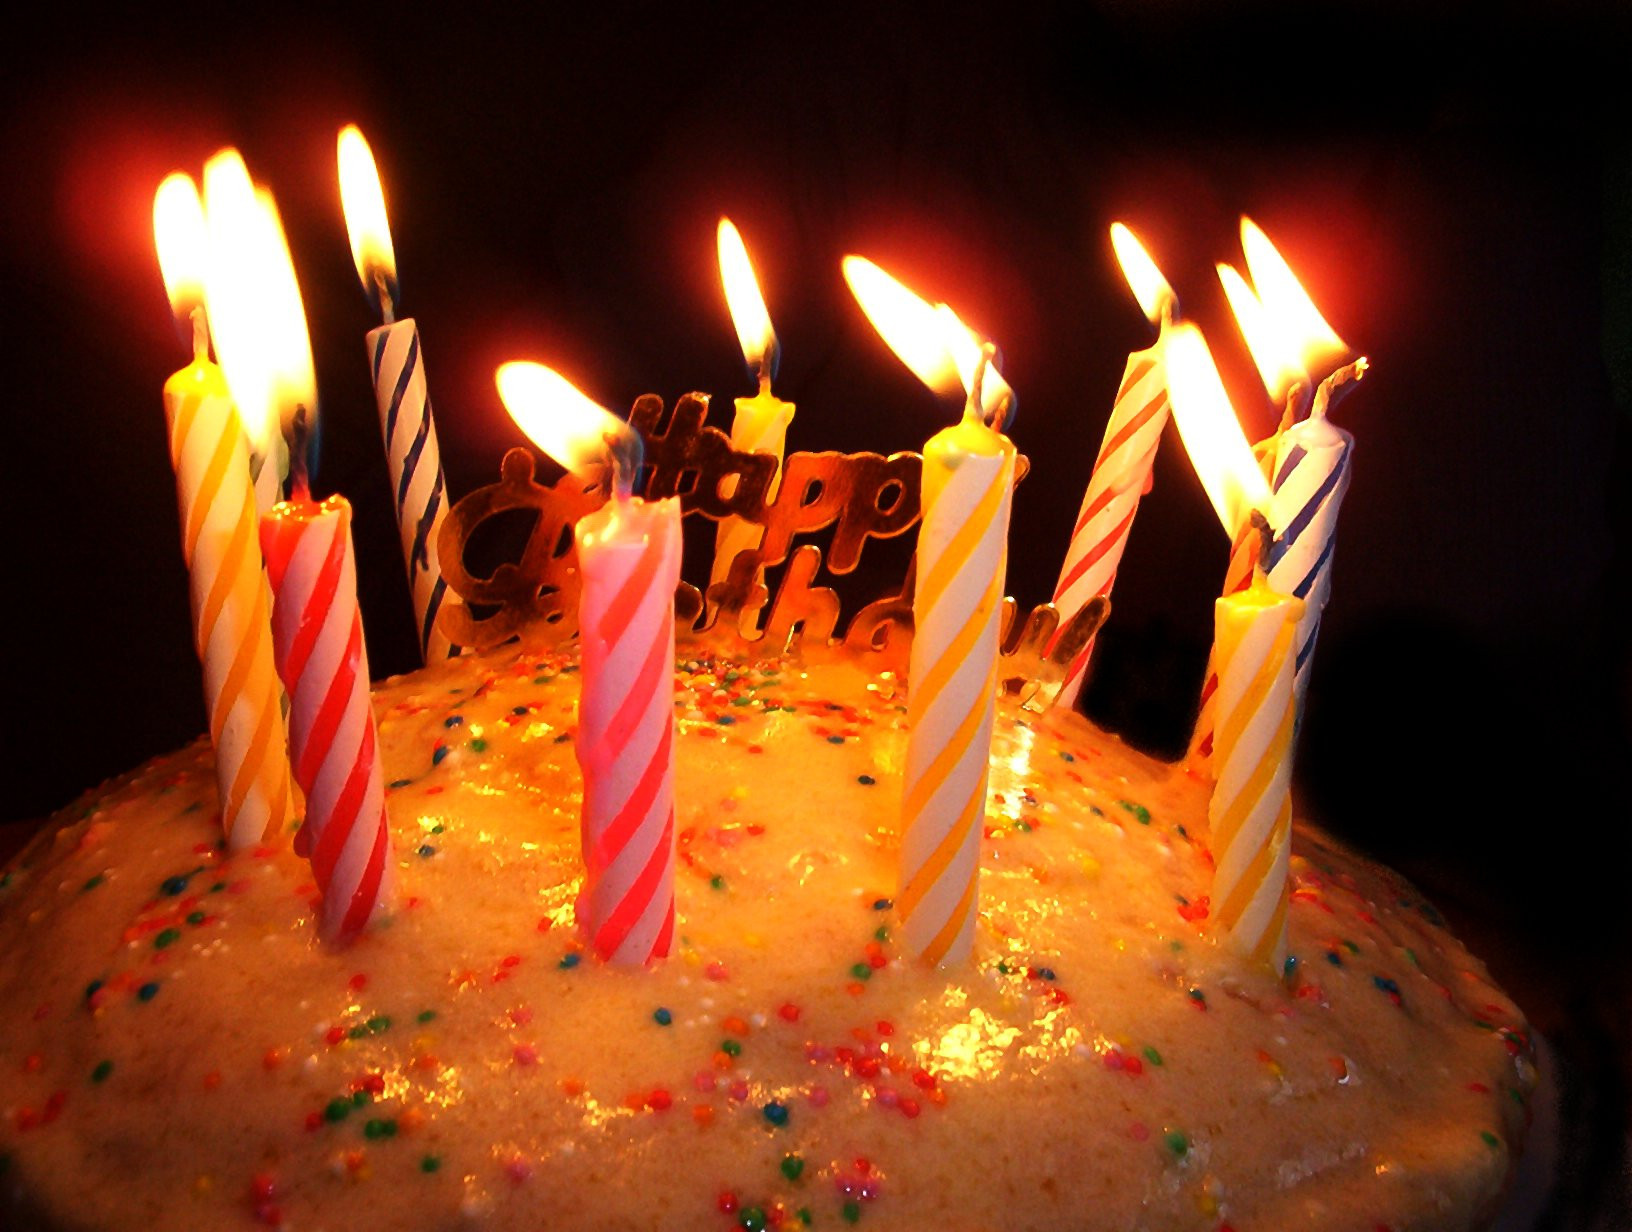 Best ideas about Birthday Cake Candles . Save or Pin August 2013 Now.